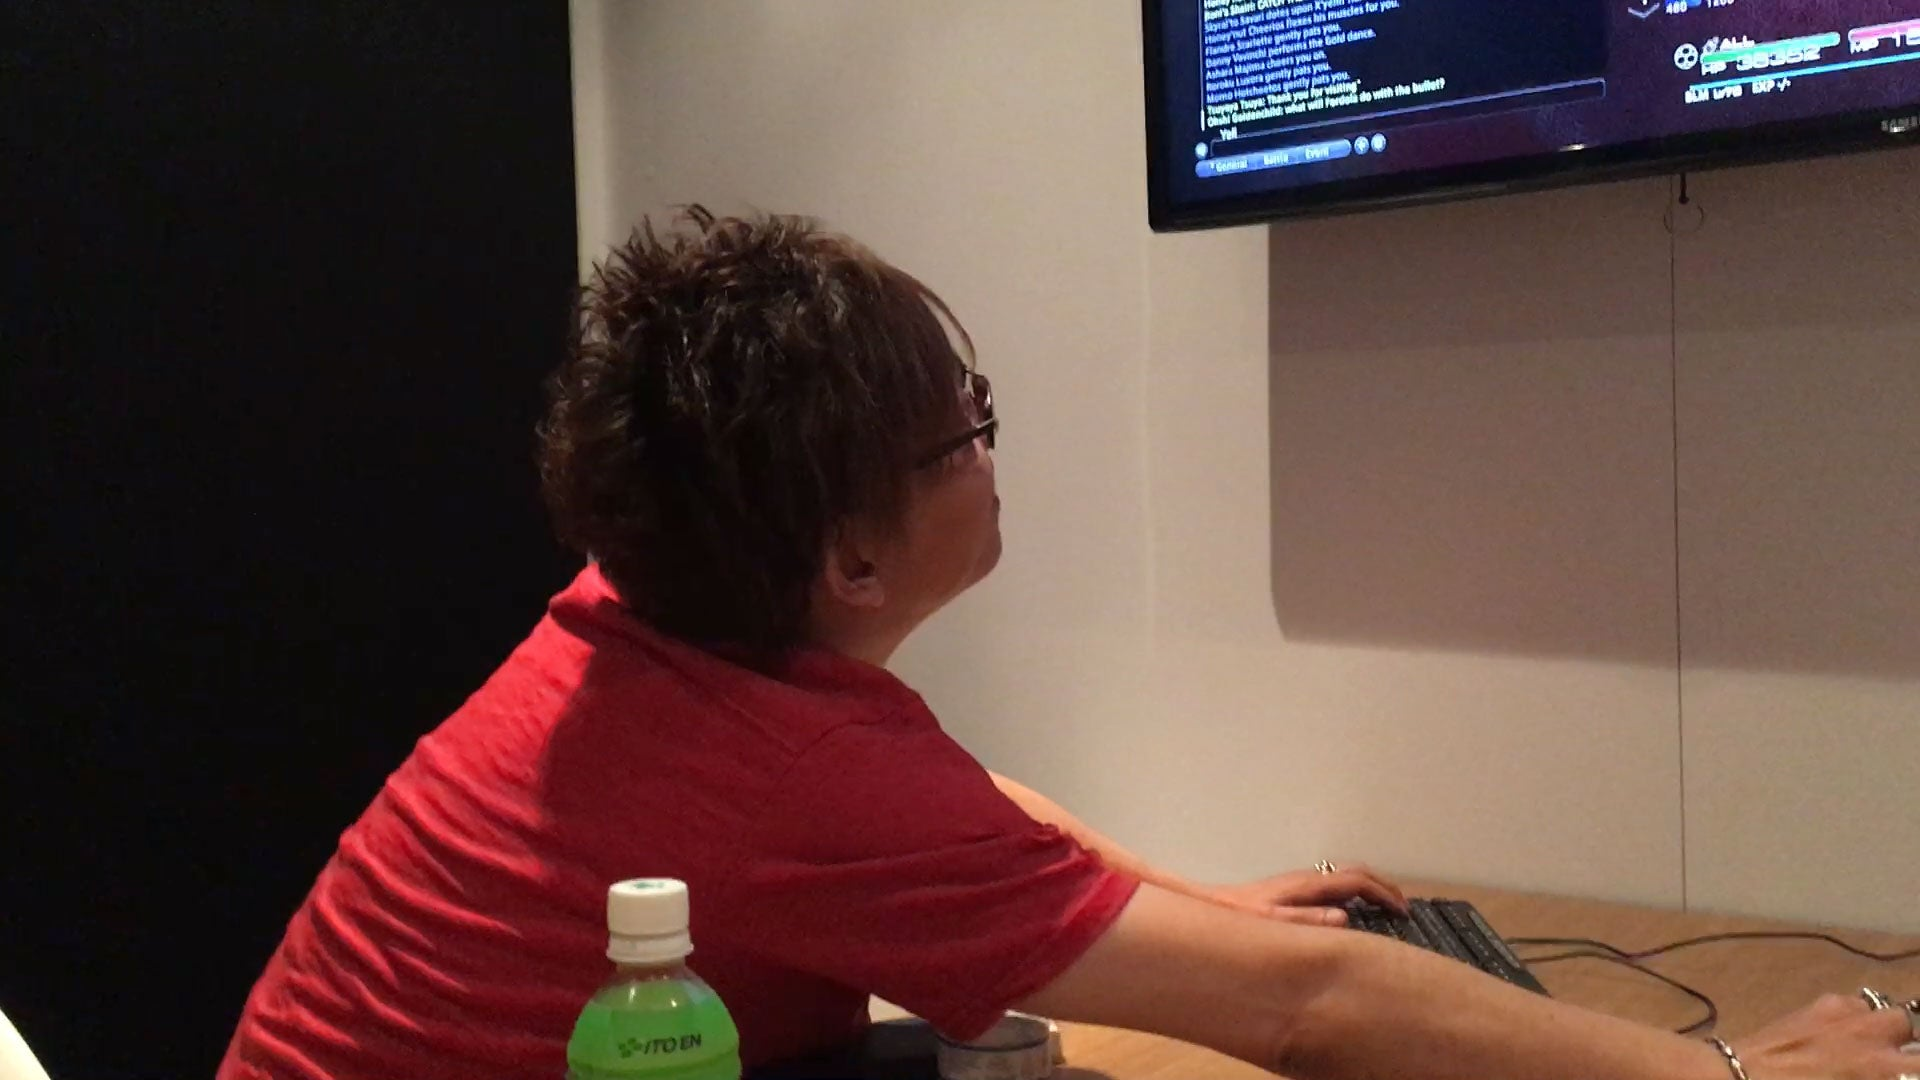 Final Fantasy XIVDirector PlaysFinal Fantasy XIV, Gets Mobbed By Fans